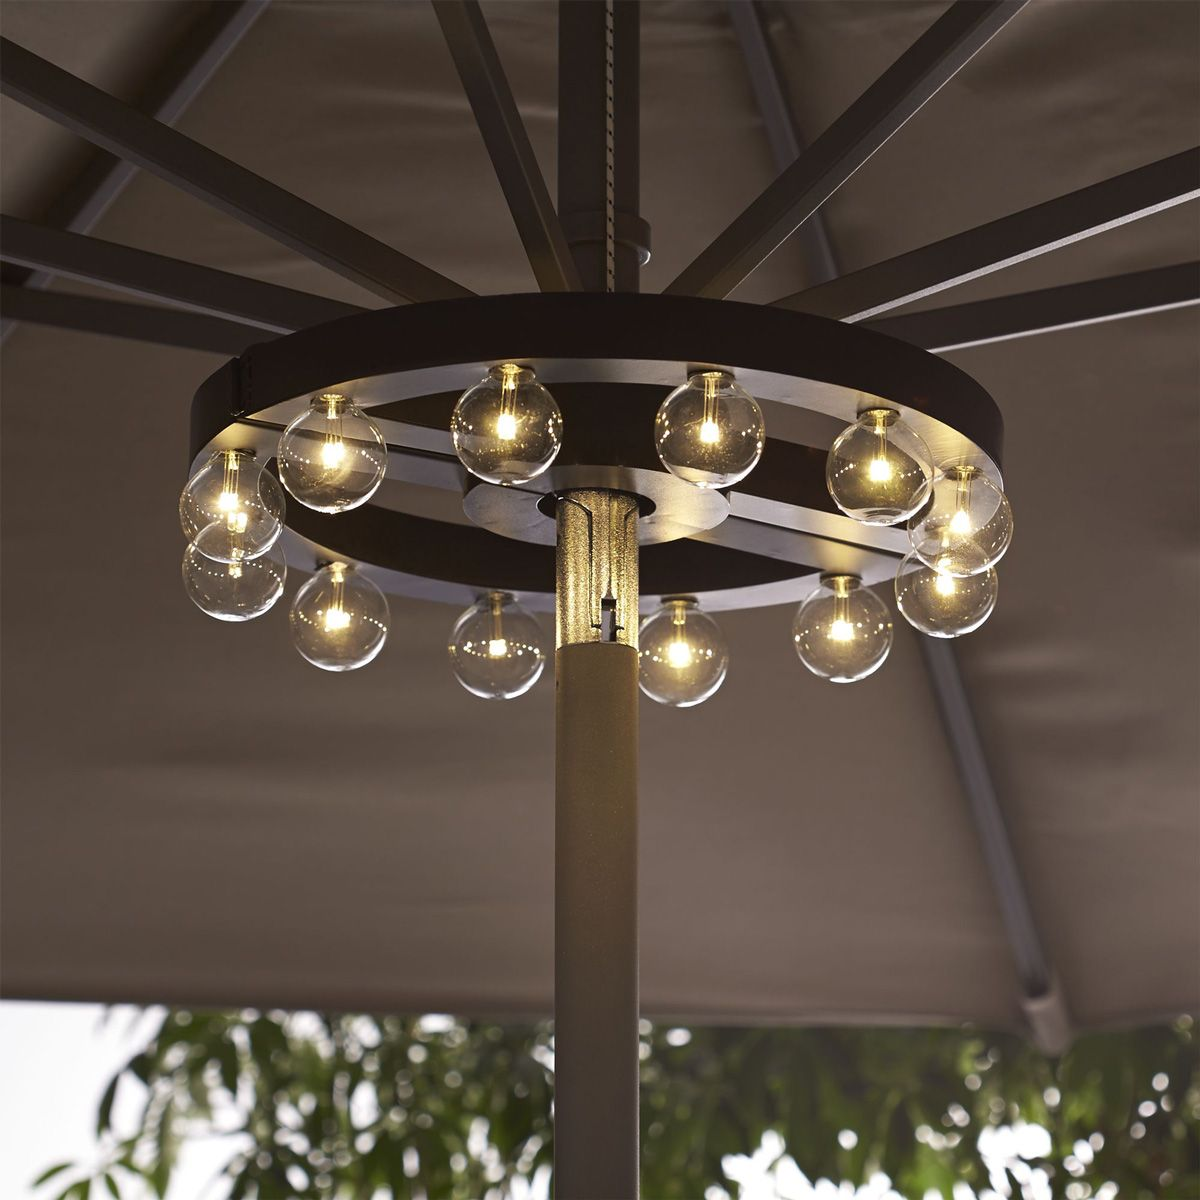 Outdoor Lights On Patio: Patio Umbrella Marquee Lights